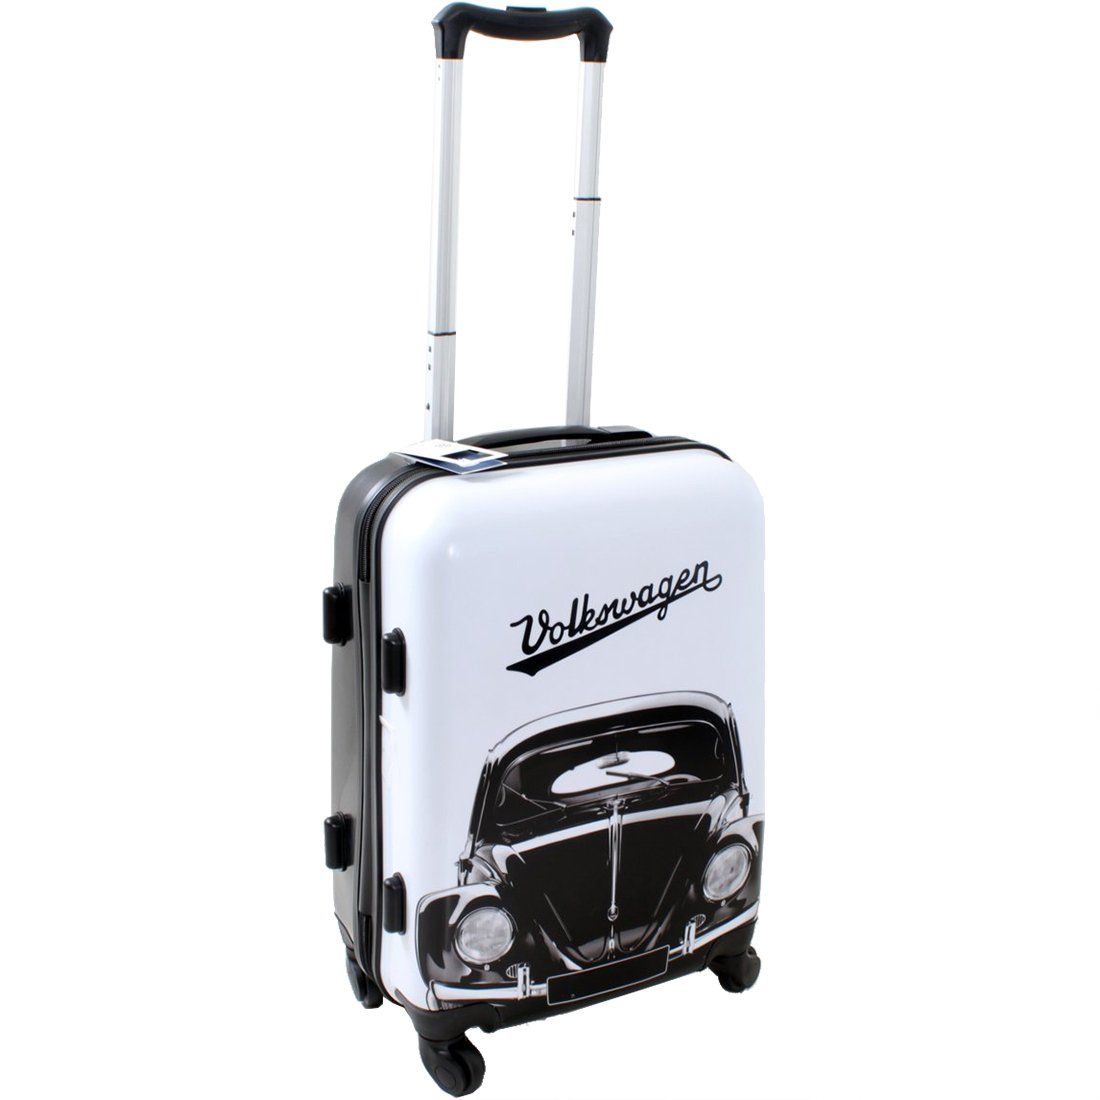 Amazon.com: Volkswagen Trolley 000087301G041: Automotive